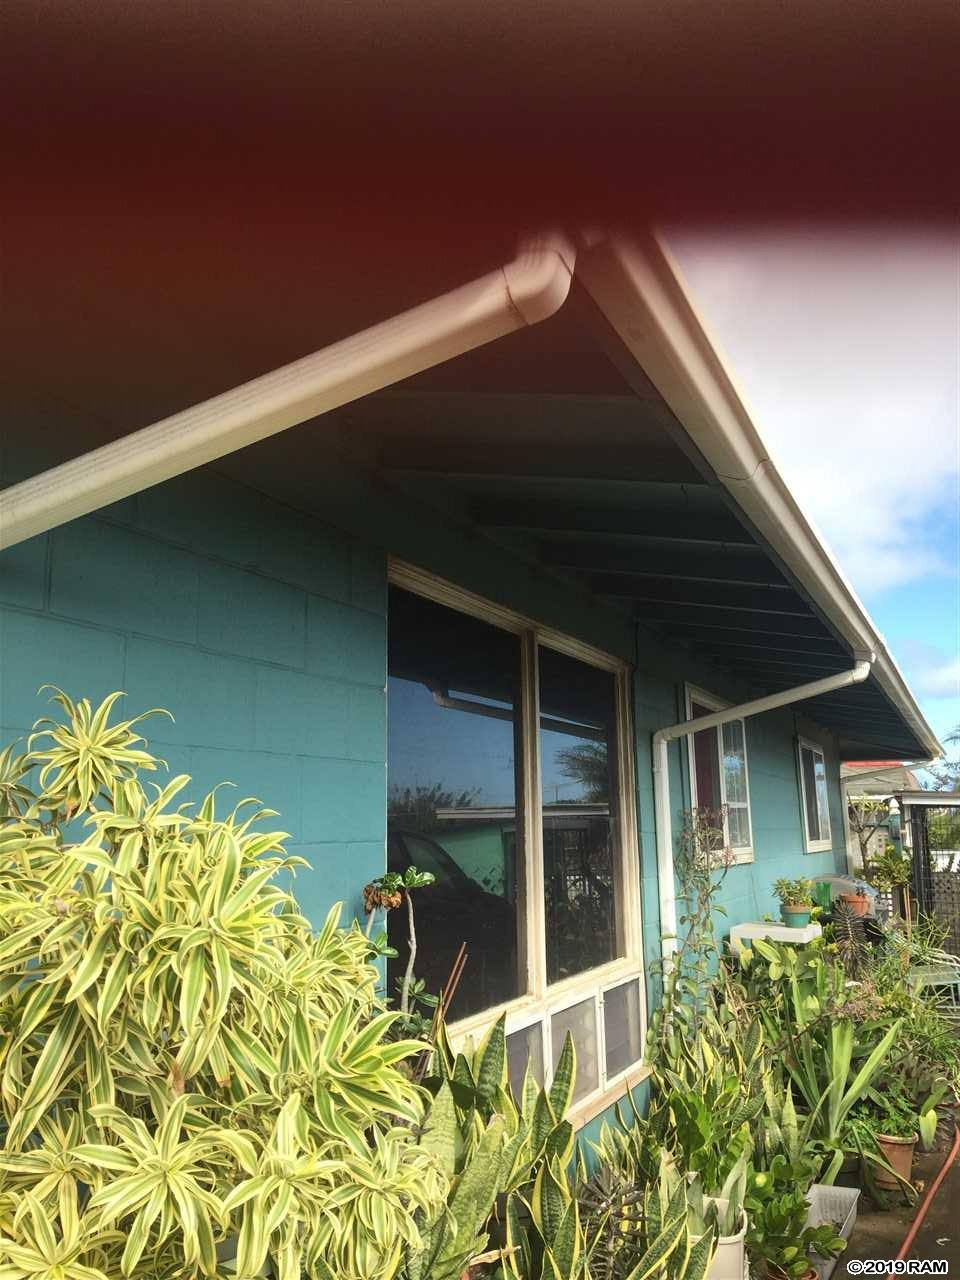 Looking for a centrally located single family home with no association? Come see this single level 4 bedroom, 2 bathroom home with a 1 bedroom, bath ohana. Call your favorite realtor for a showing